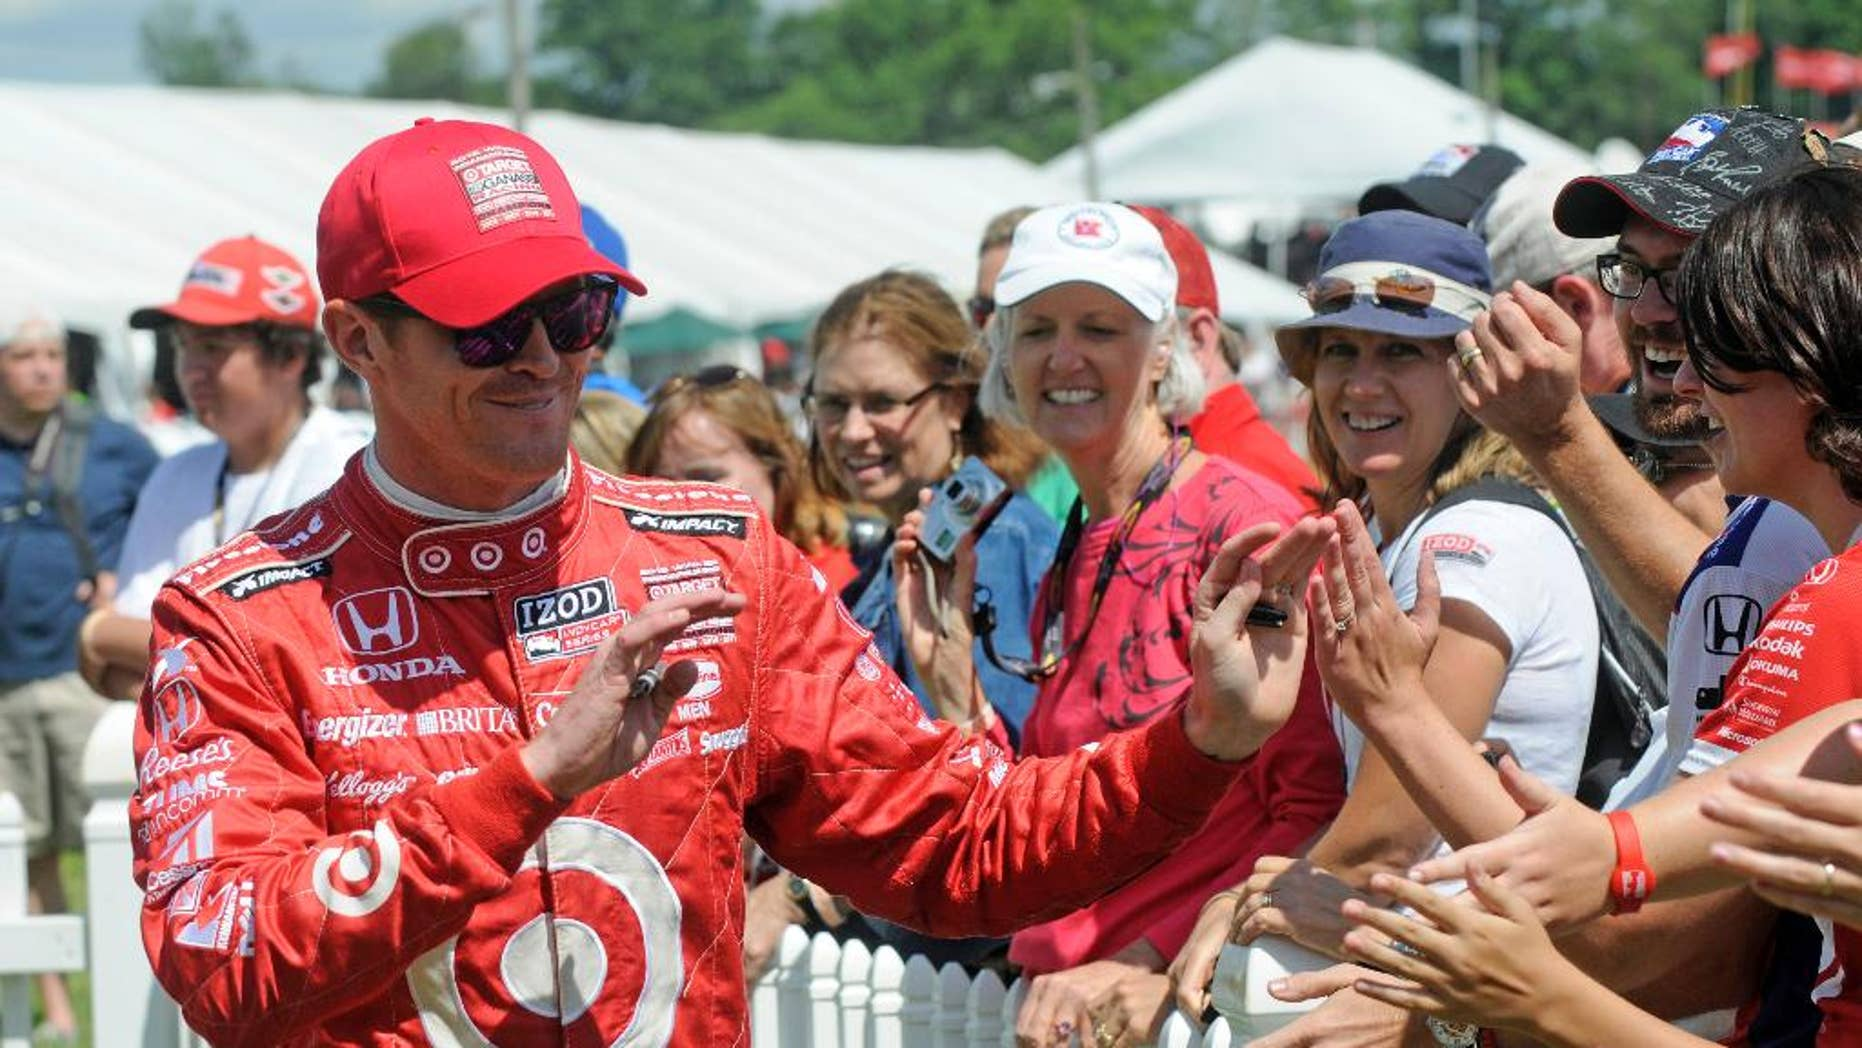 FILE - In this Aug. 4, 2013 file photo, Scott Dixon, of New Zealand, greets fans during driver introductions at the Honda Indy 200 at Mid-Ohio in Lexington, Ohio. Sponsors come and go in motor sports, where even the strongest partnerships can quickly unravel because of the economy, a difference of opinion or a change in marketing strategy. But Chip Ganassi has developed a partnership with Target that has lasted 25 years in counting, and the team owner considers the relationship with the retail giant a key element in the growth of his race team and Ganassi himself.  (AP Photo/Tom E. Puskar, File)